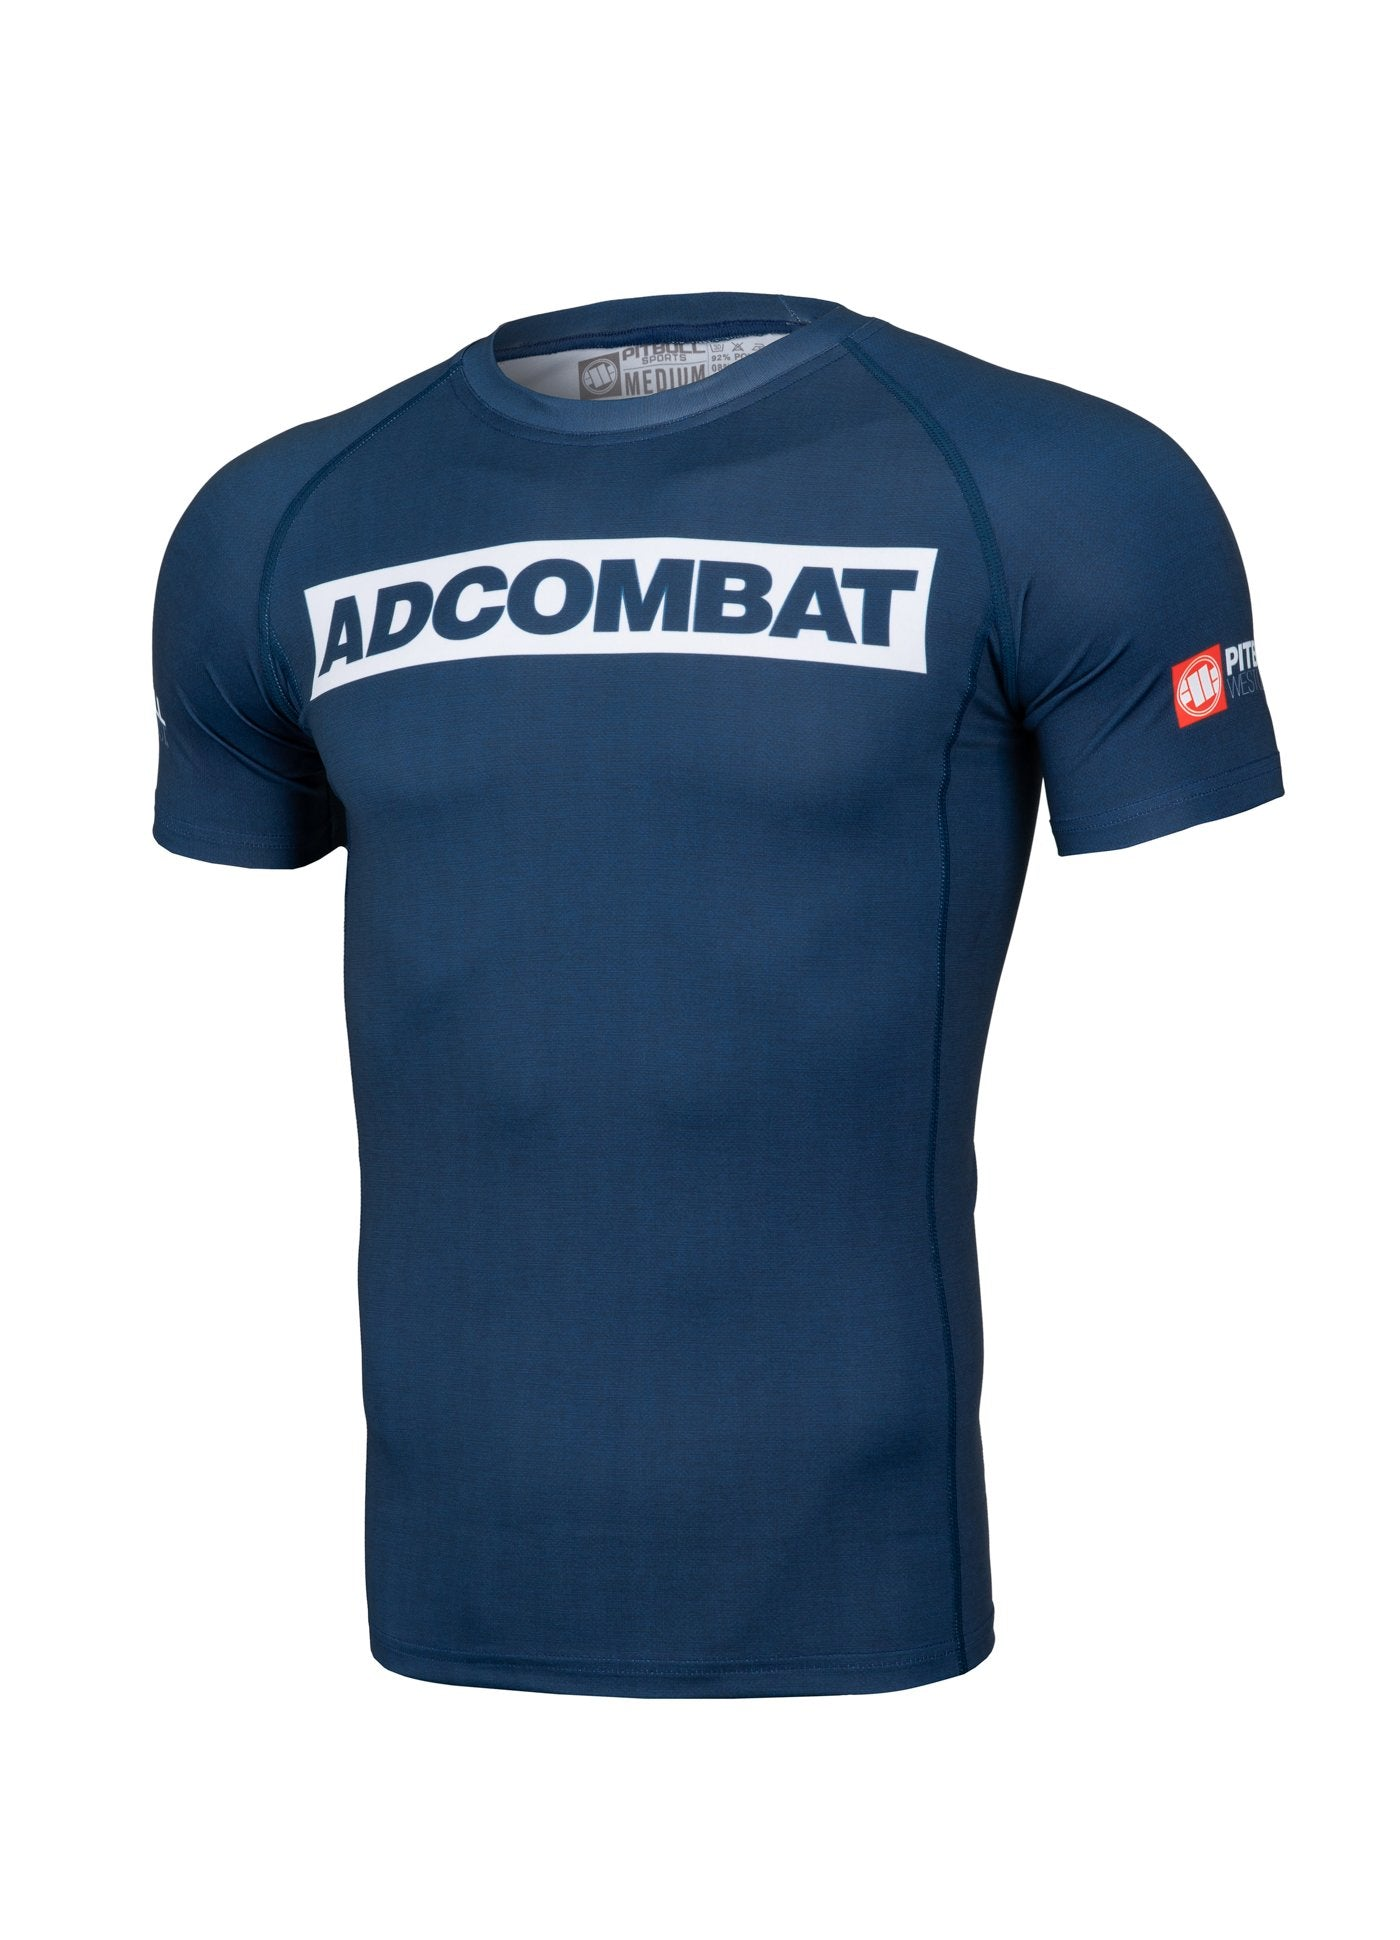 ADCC HILLTOP Short Sleeve Rashguard DARK NAVY - Pitbull West Coast U.S.A.